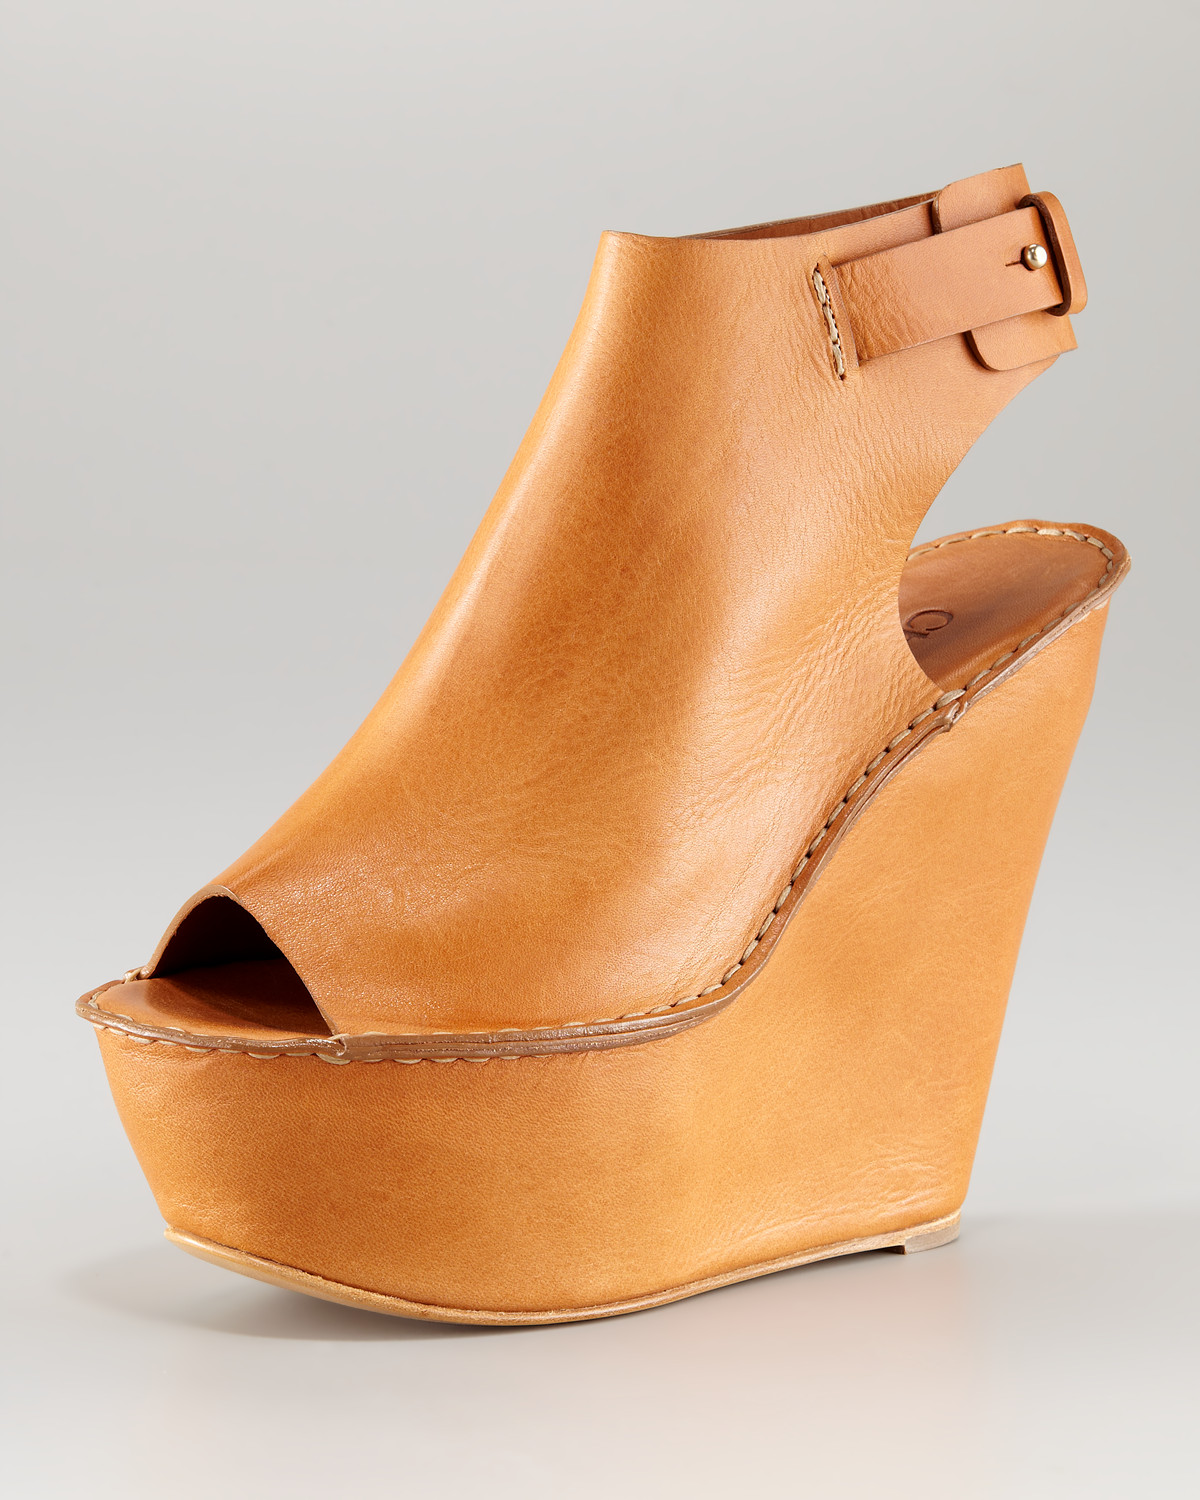 cheap the cheapest Chloé Suede Peep-Toe Wedges big sale cheap online ZihO7nU